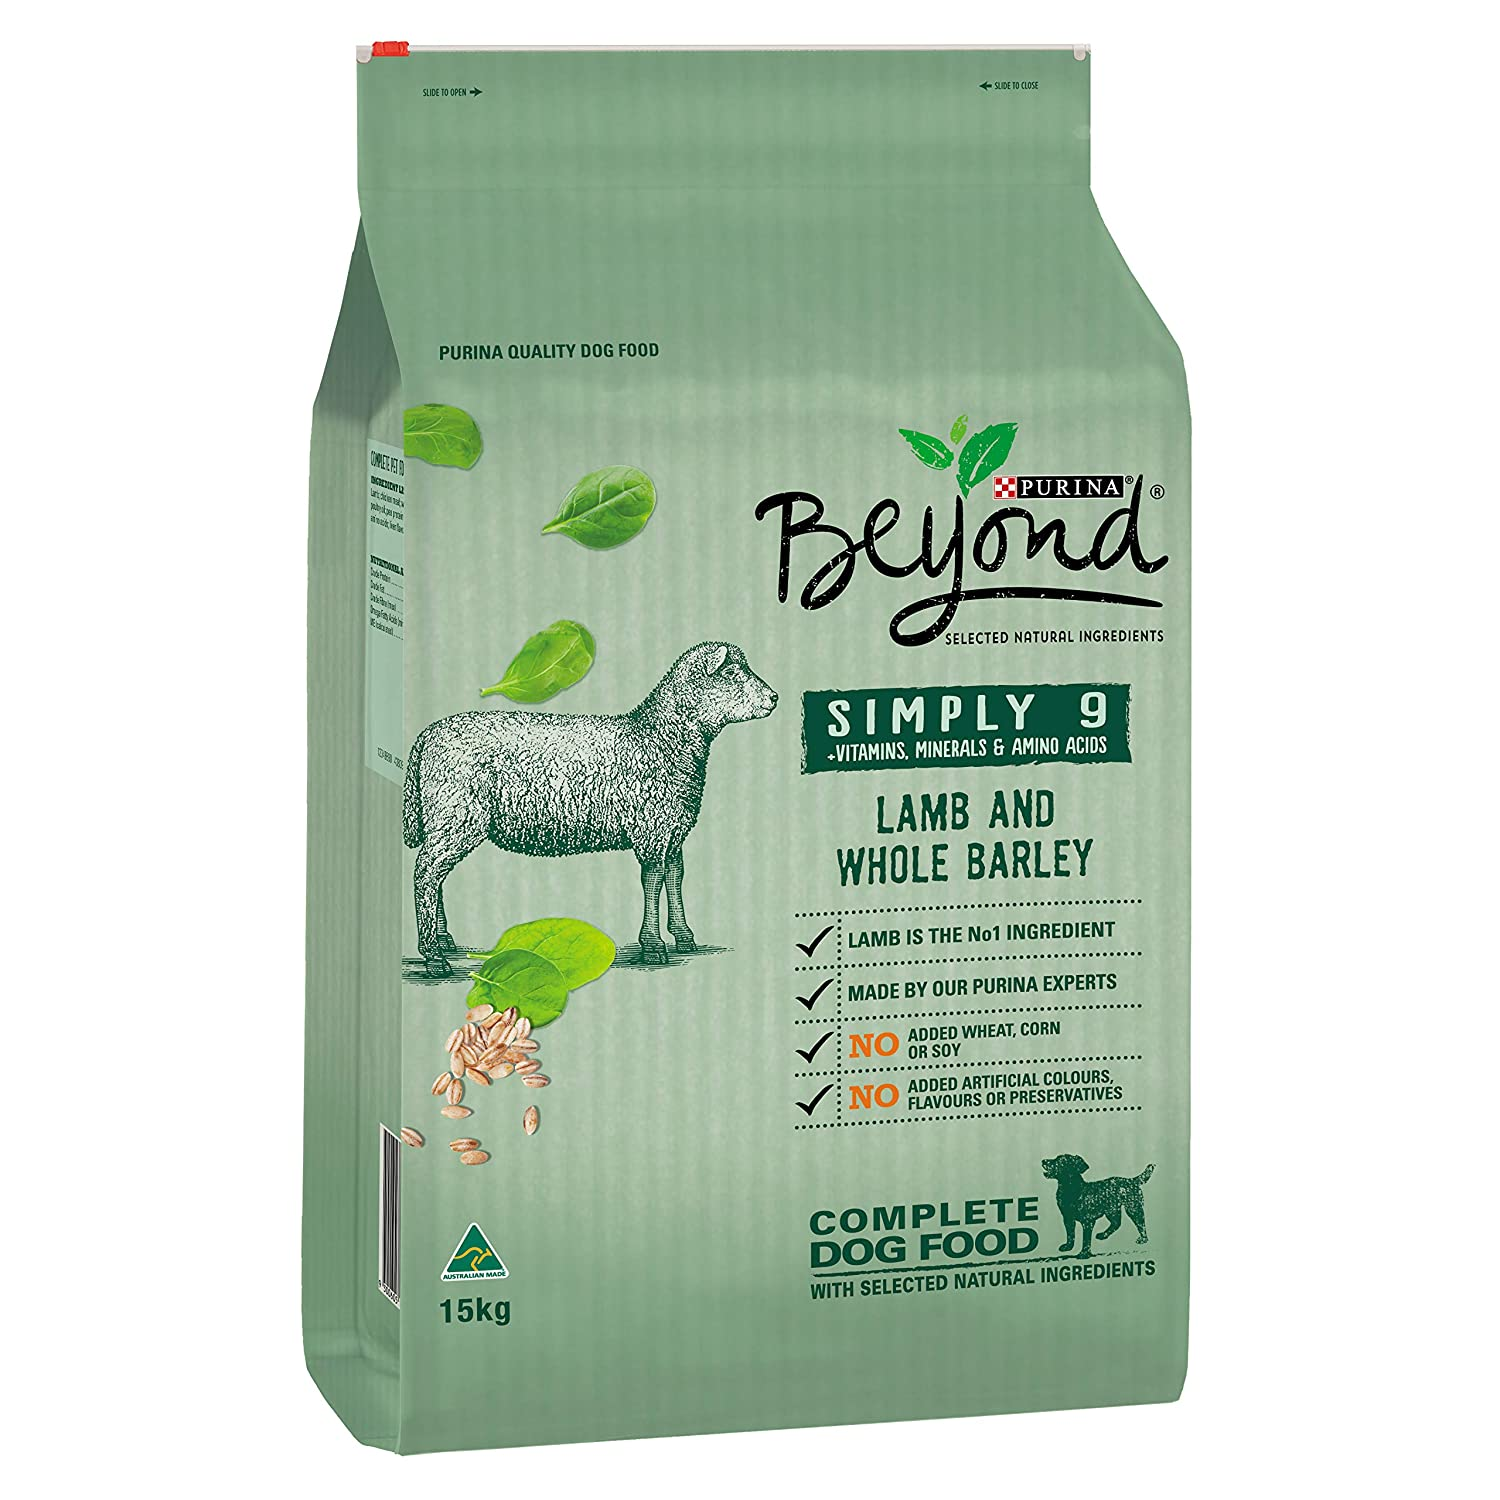 Beyond Simply 9 Lamb & Whole Barley, 15kg